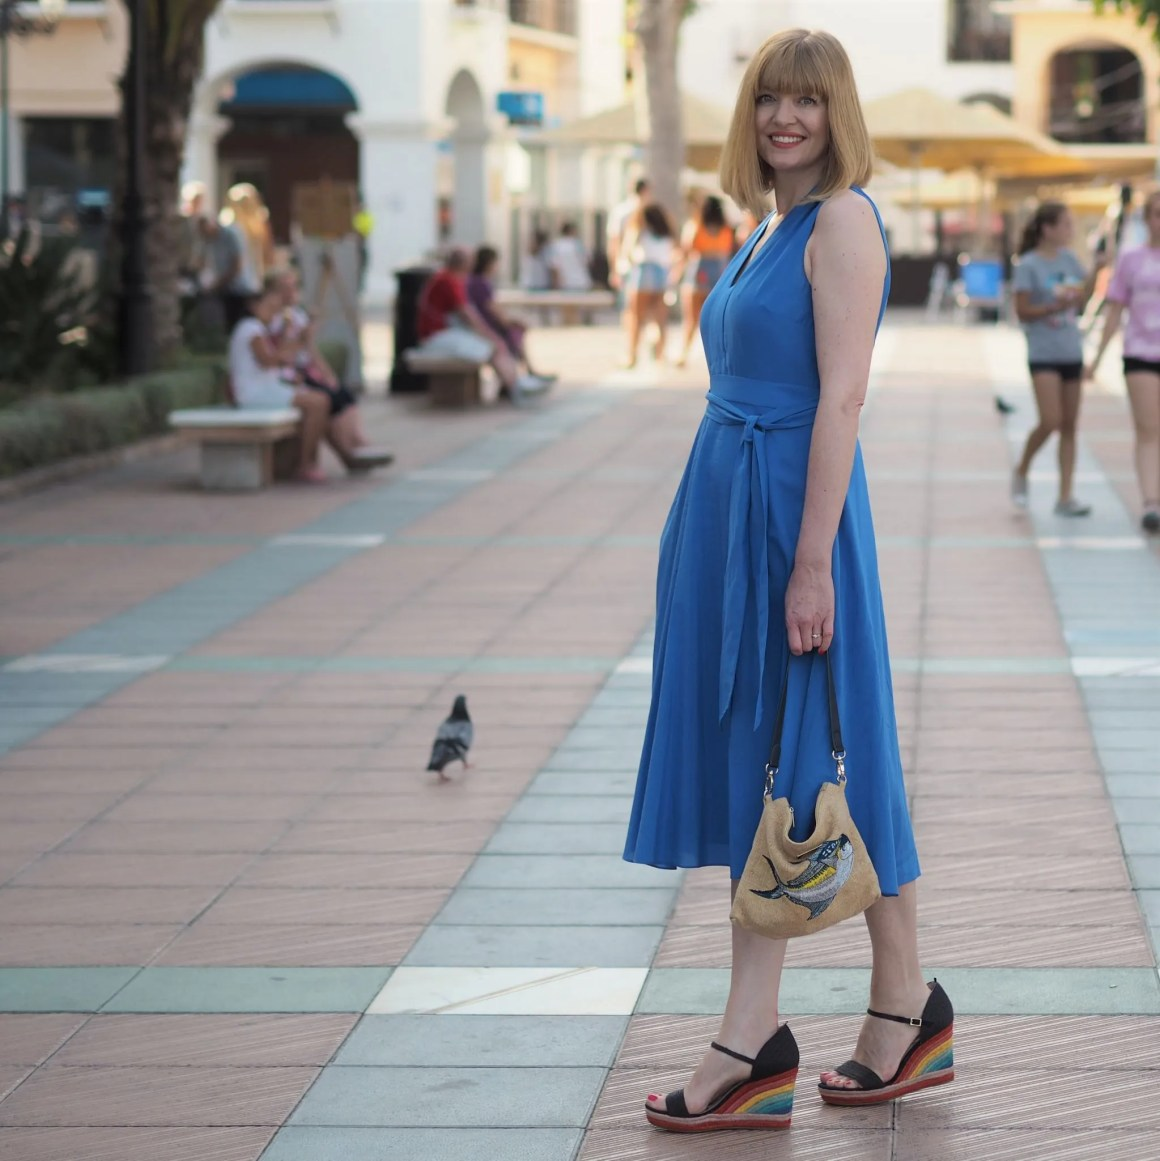 sapphire dress with rainbow wedges